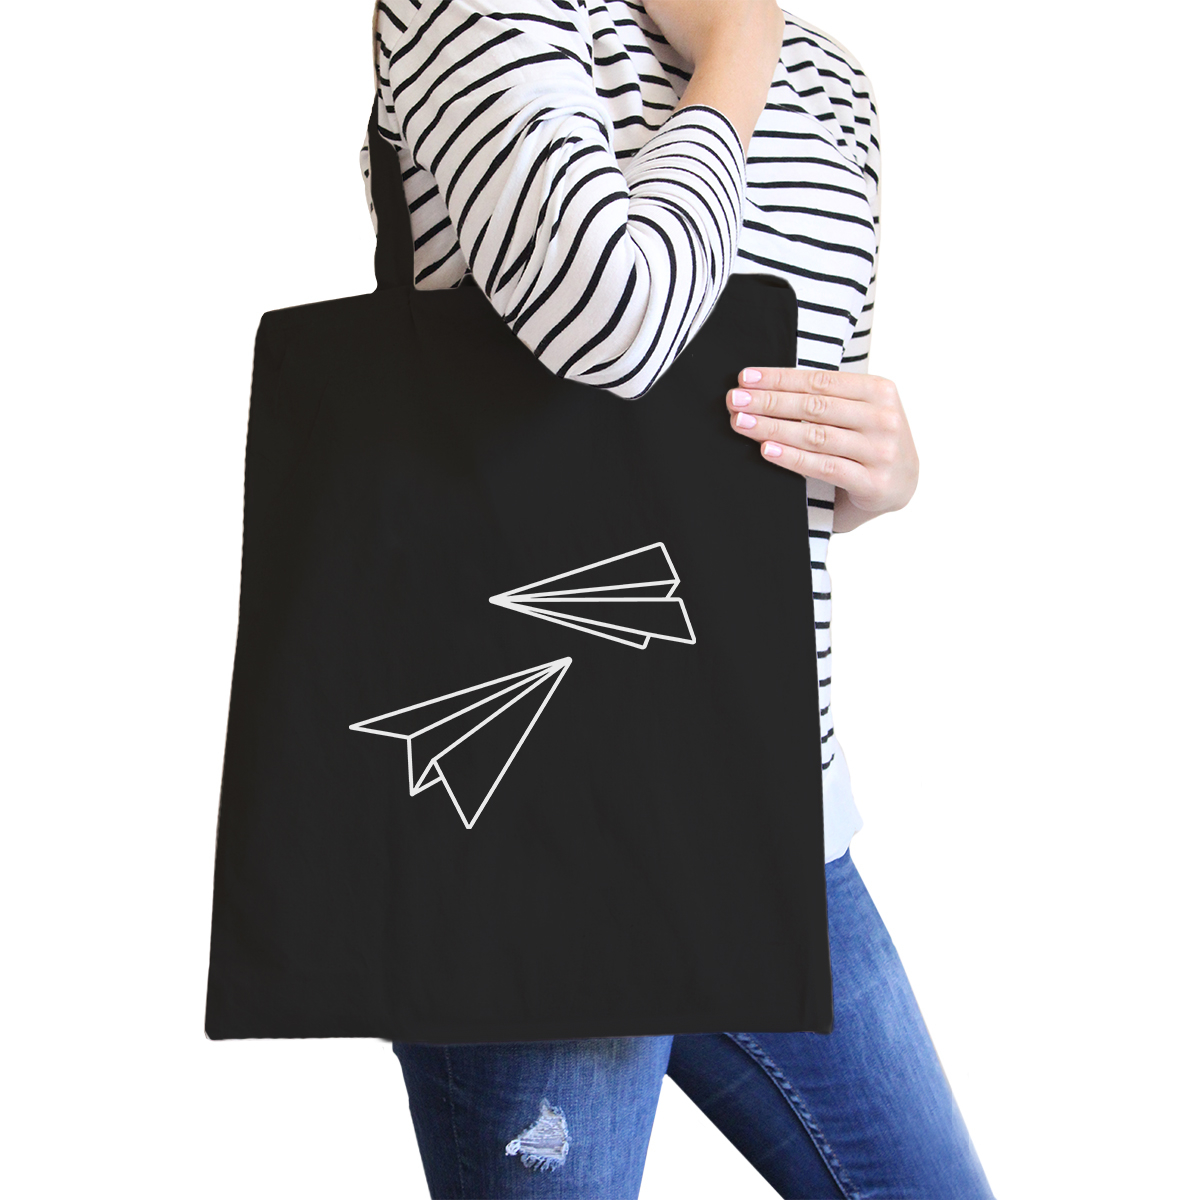 365 Printing Paper Airplane Black Canvas Bag Gifts Ideas For BFF Tote (JCB051) photo